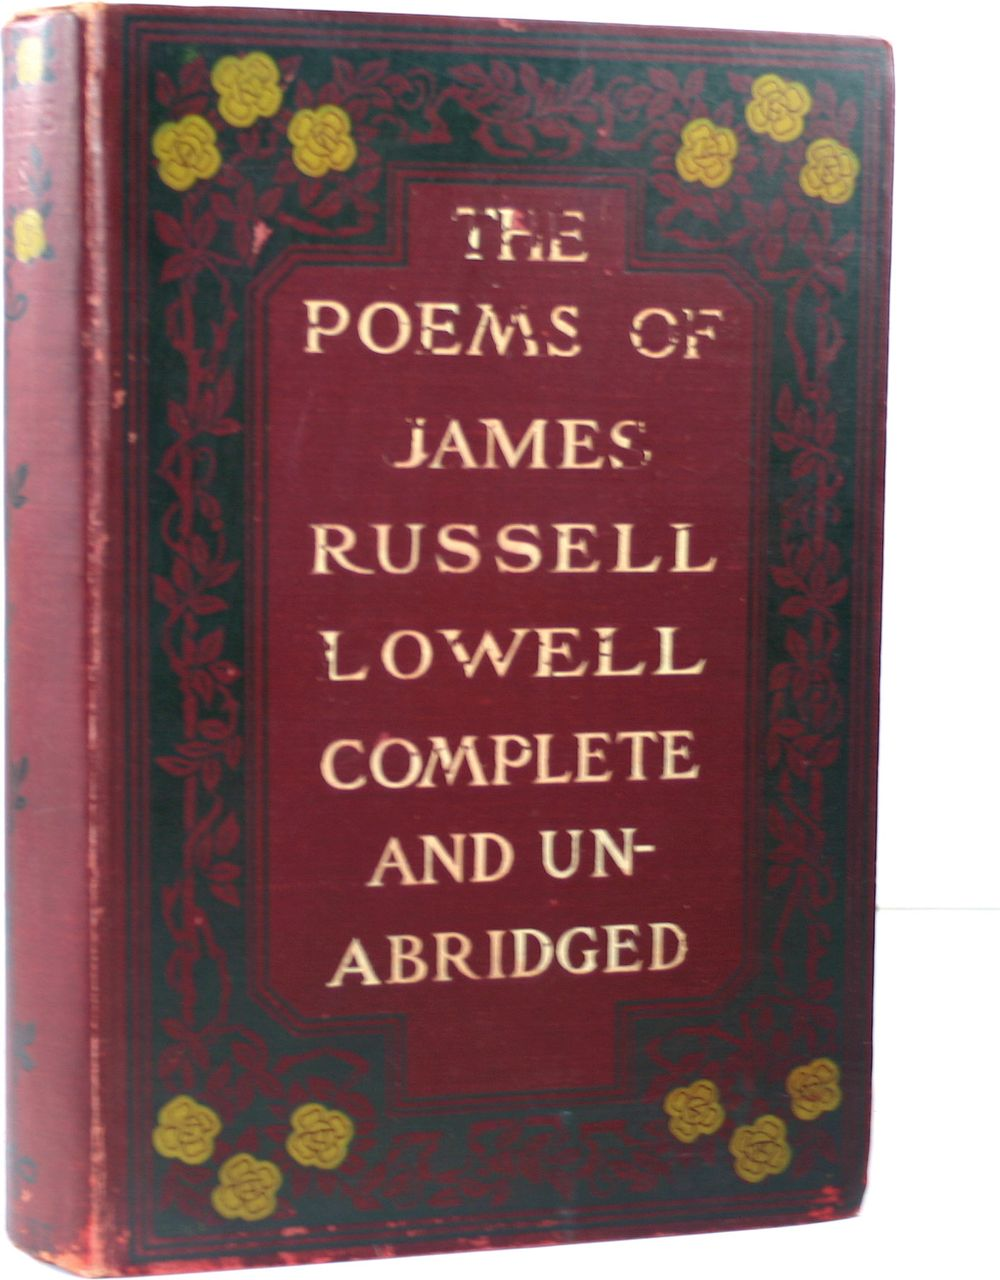 The Poems of James Russell Lowell Complete 1896